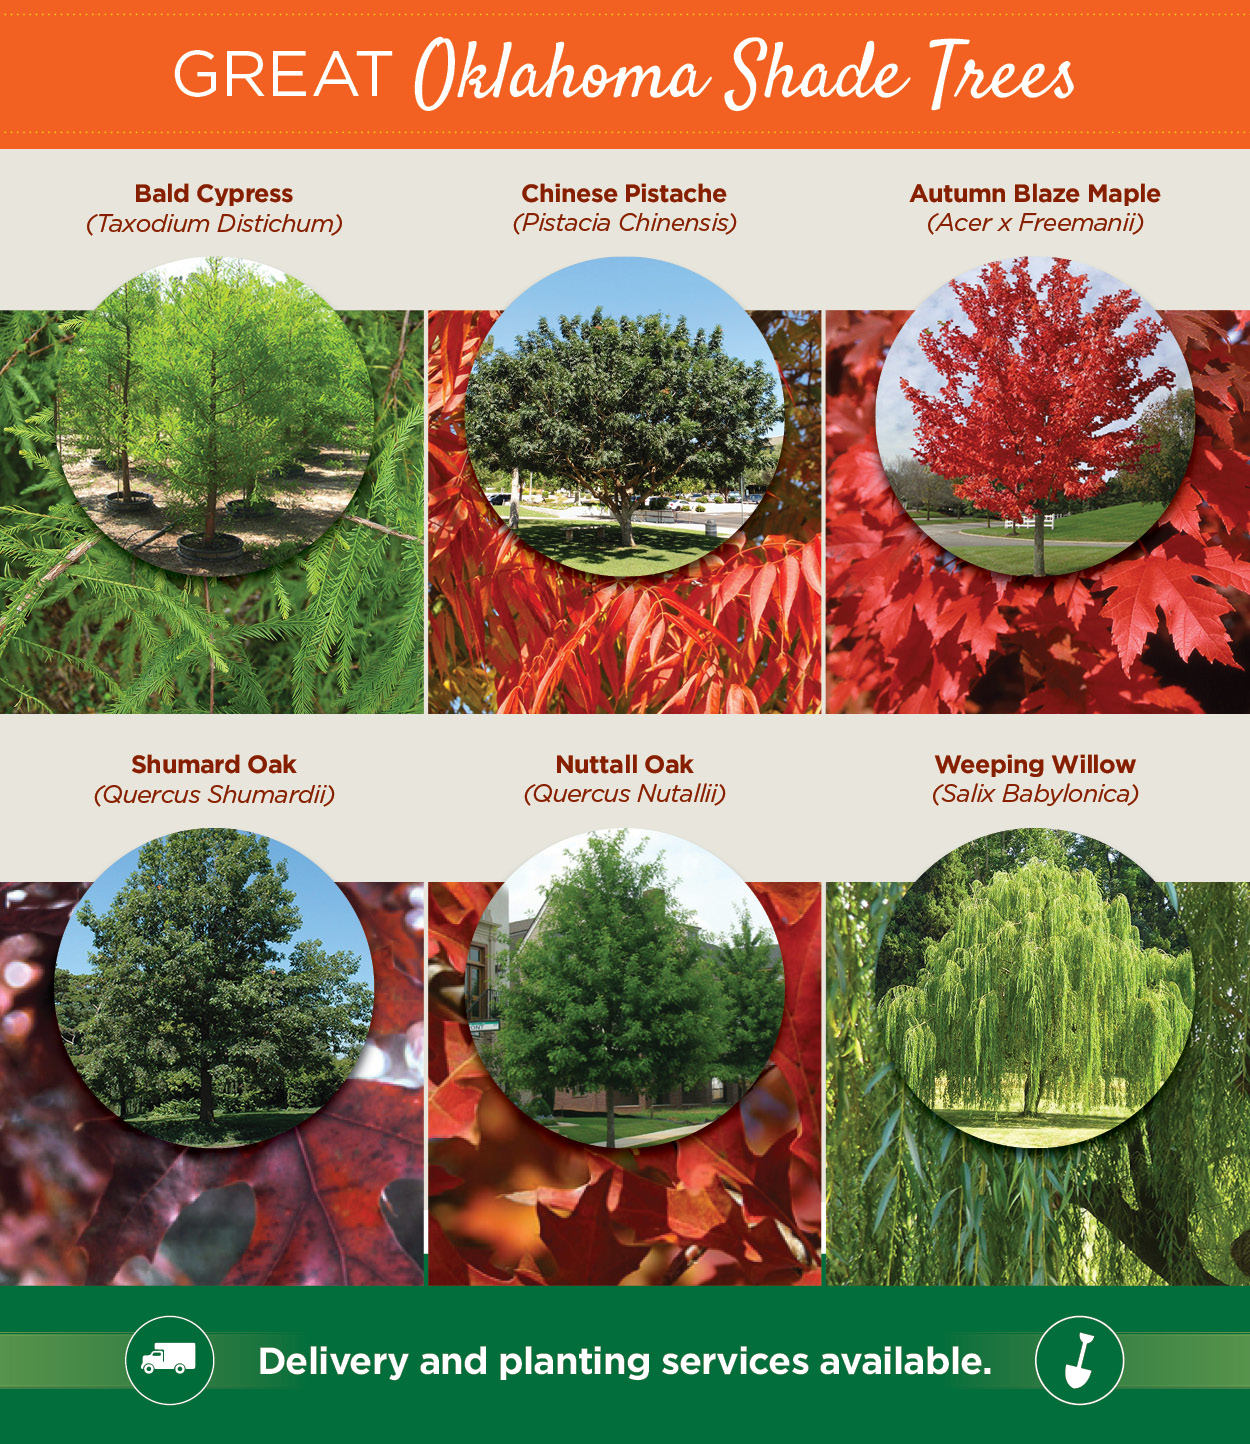 Great Oklahoma Shade Trees | TLC Garden Centers